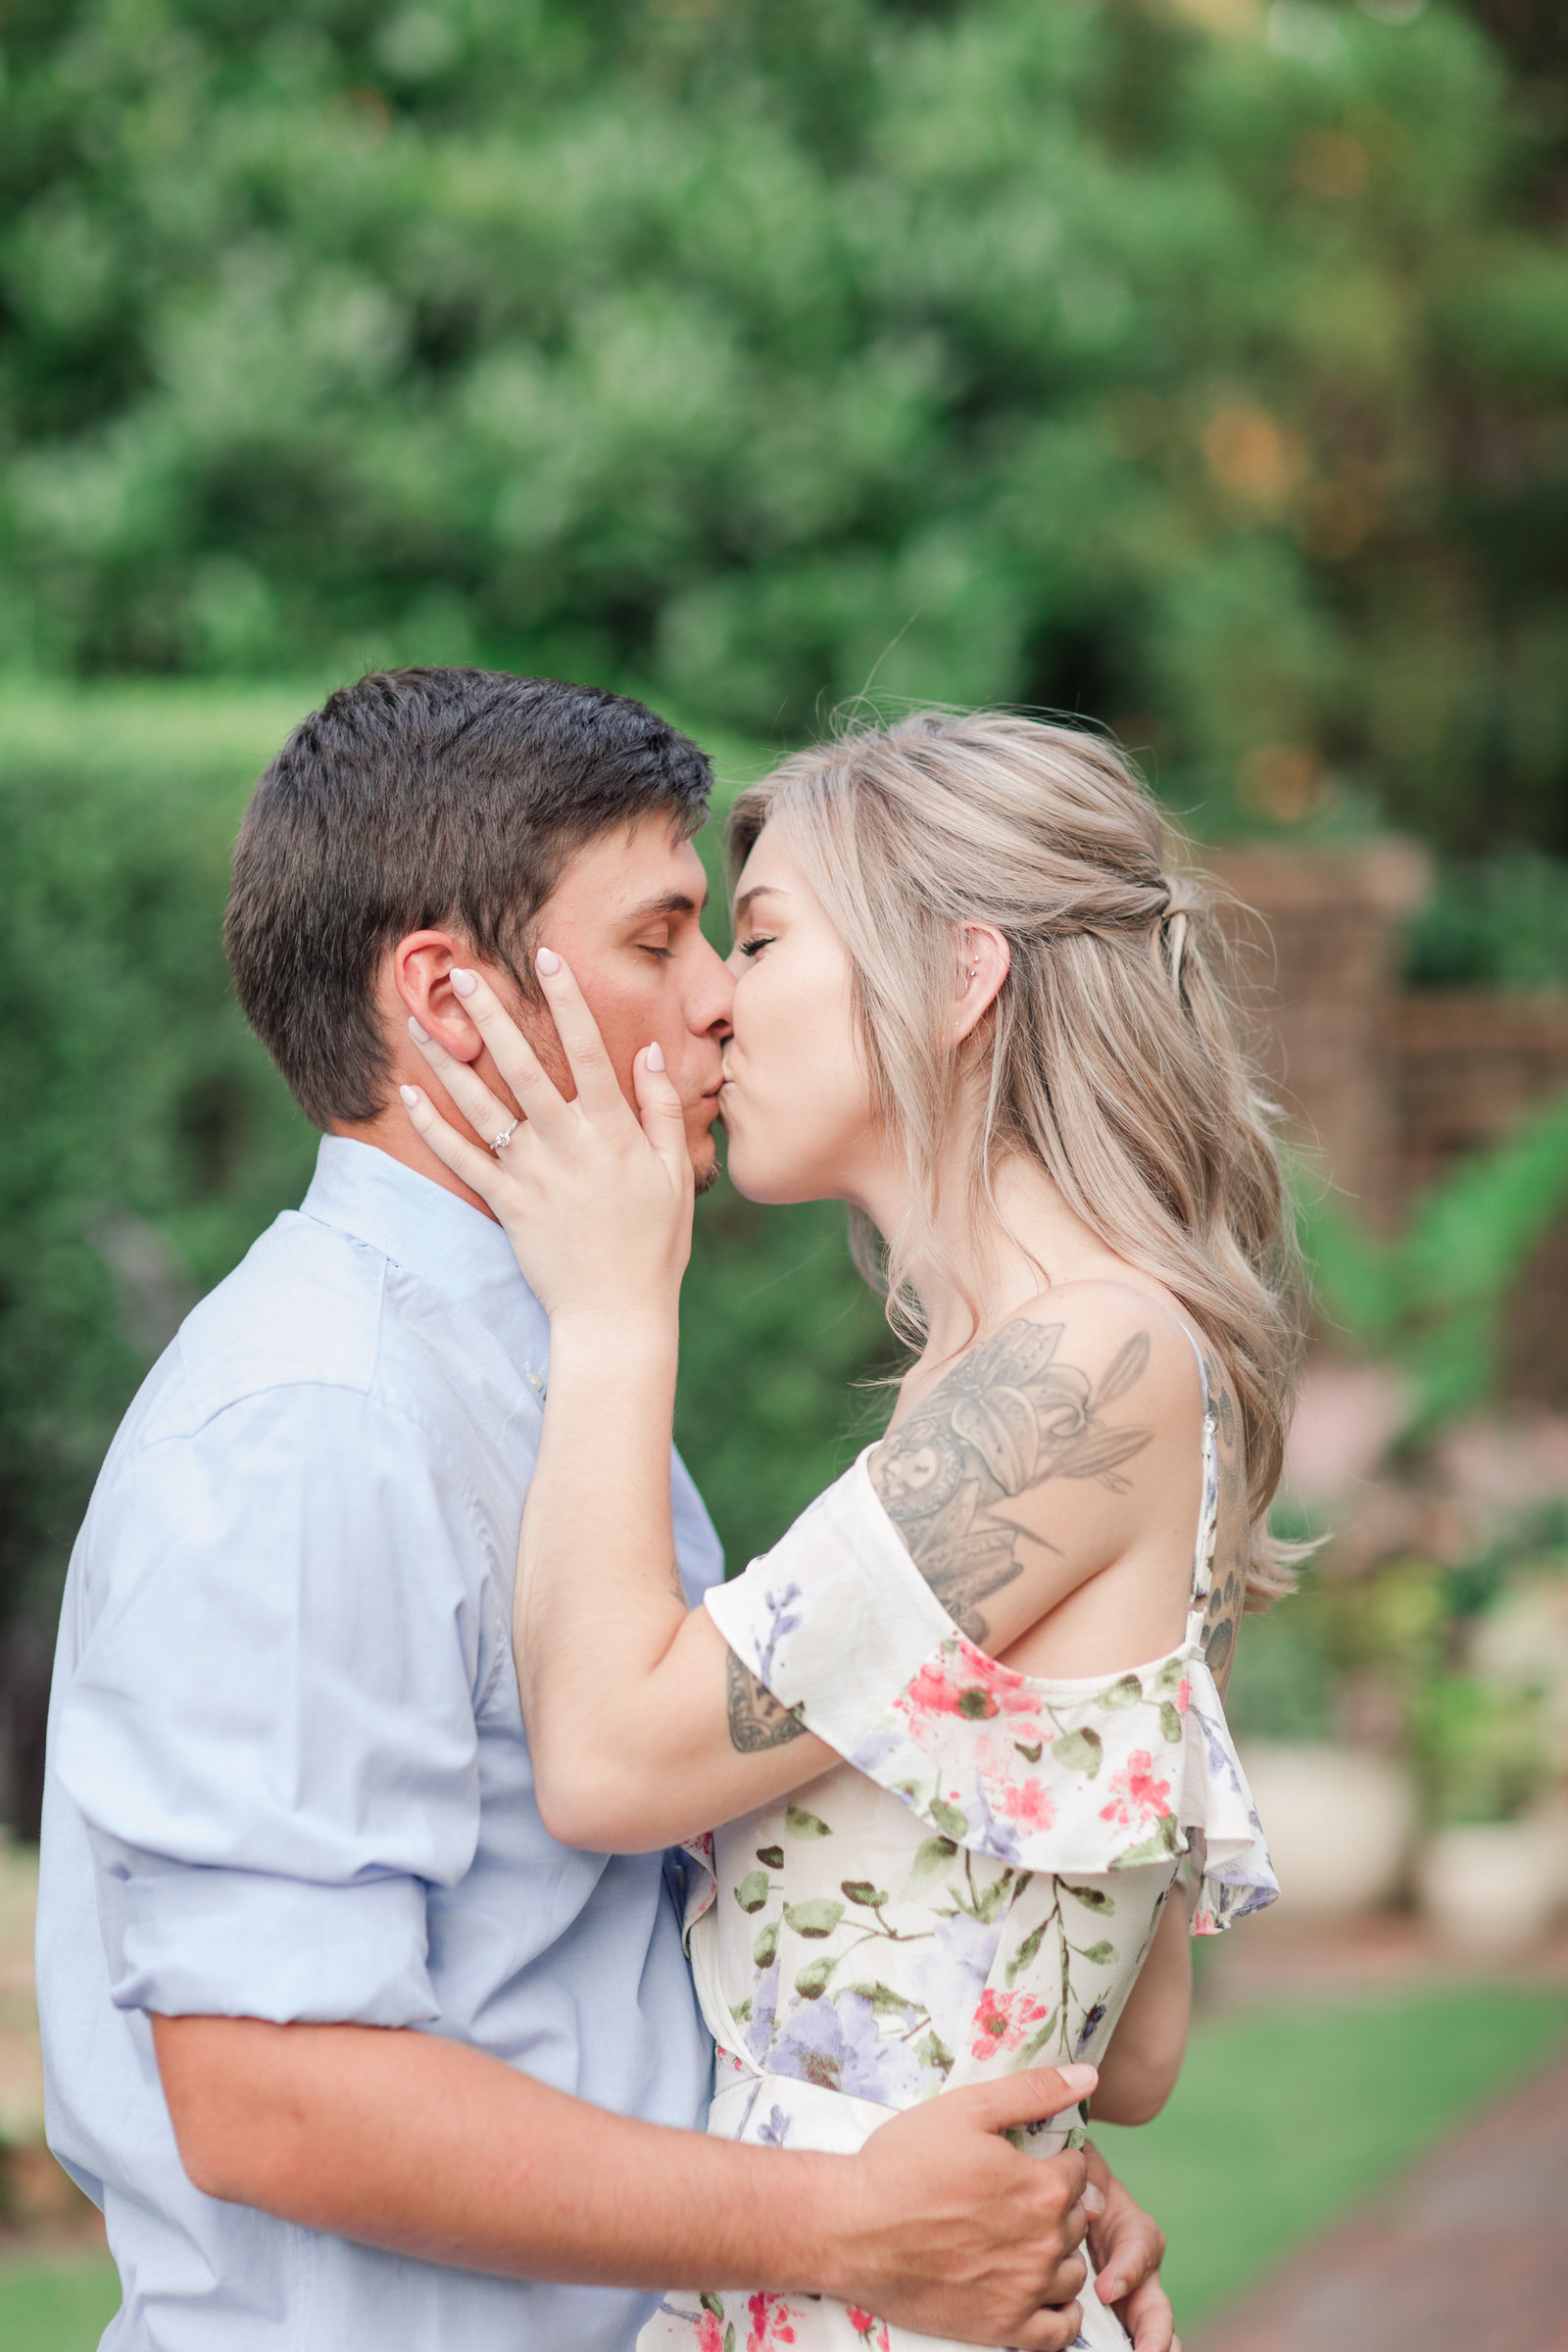 Jennifer B Photography-Sandhills Horticultural Gardens Engagement-Pinehurst NC-Cody and Kayla-2019-0160